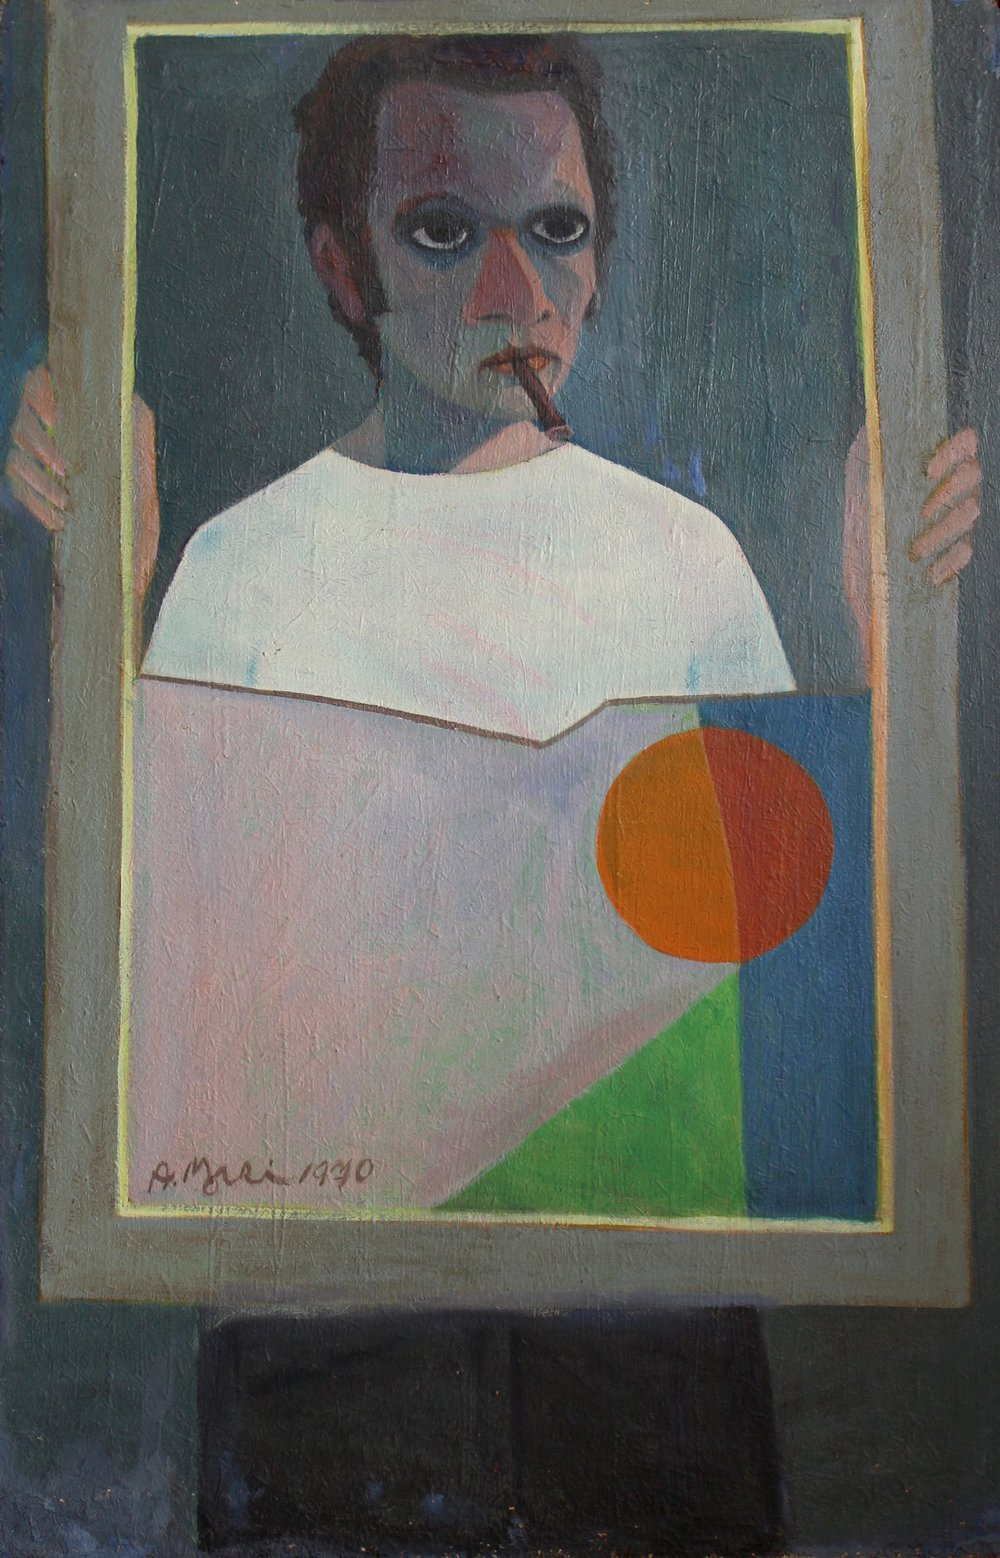 Ahmed-Morsi-Self-Portrait-1970.jpg